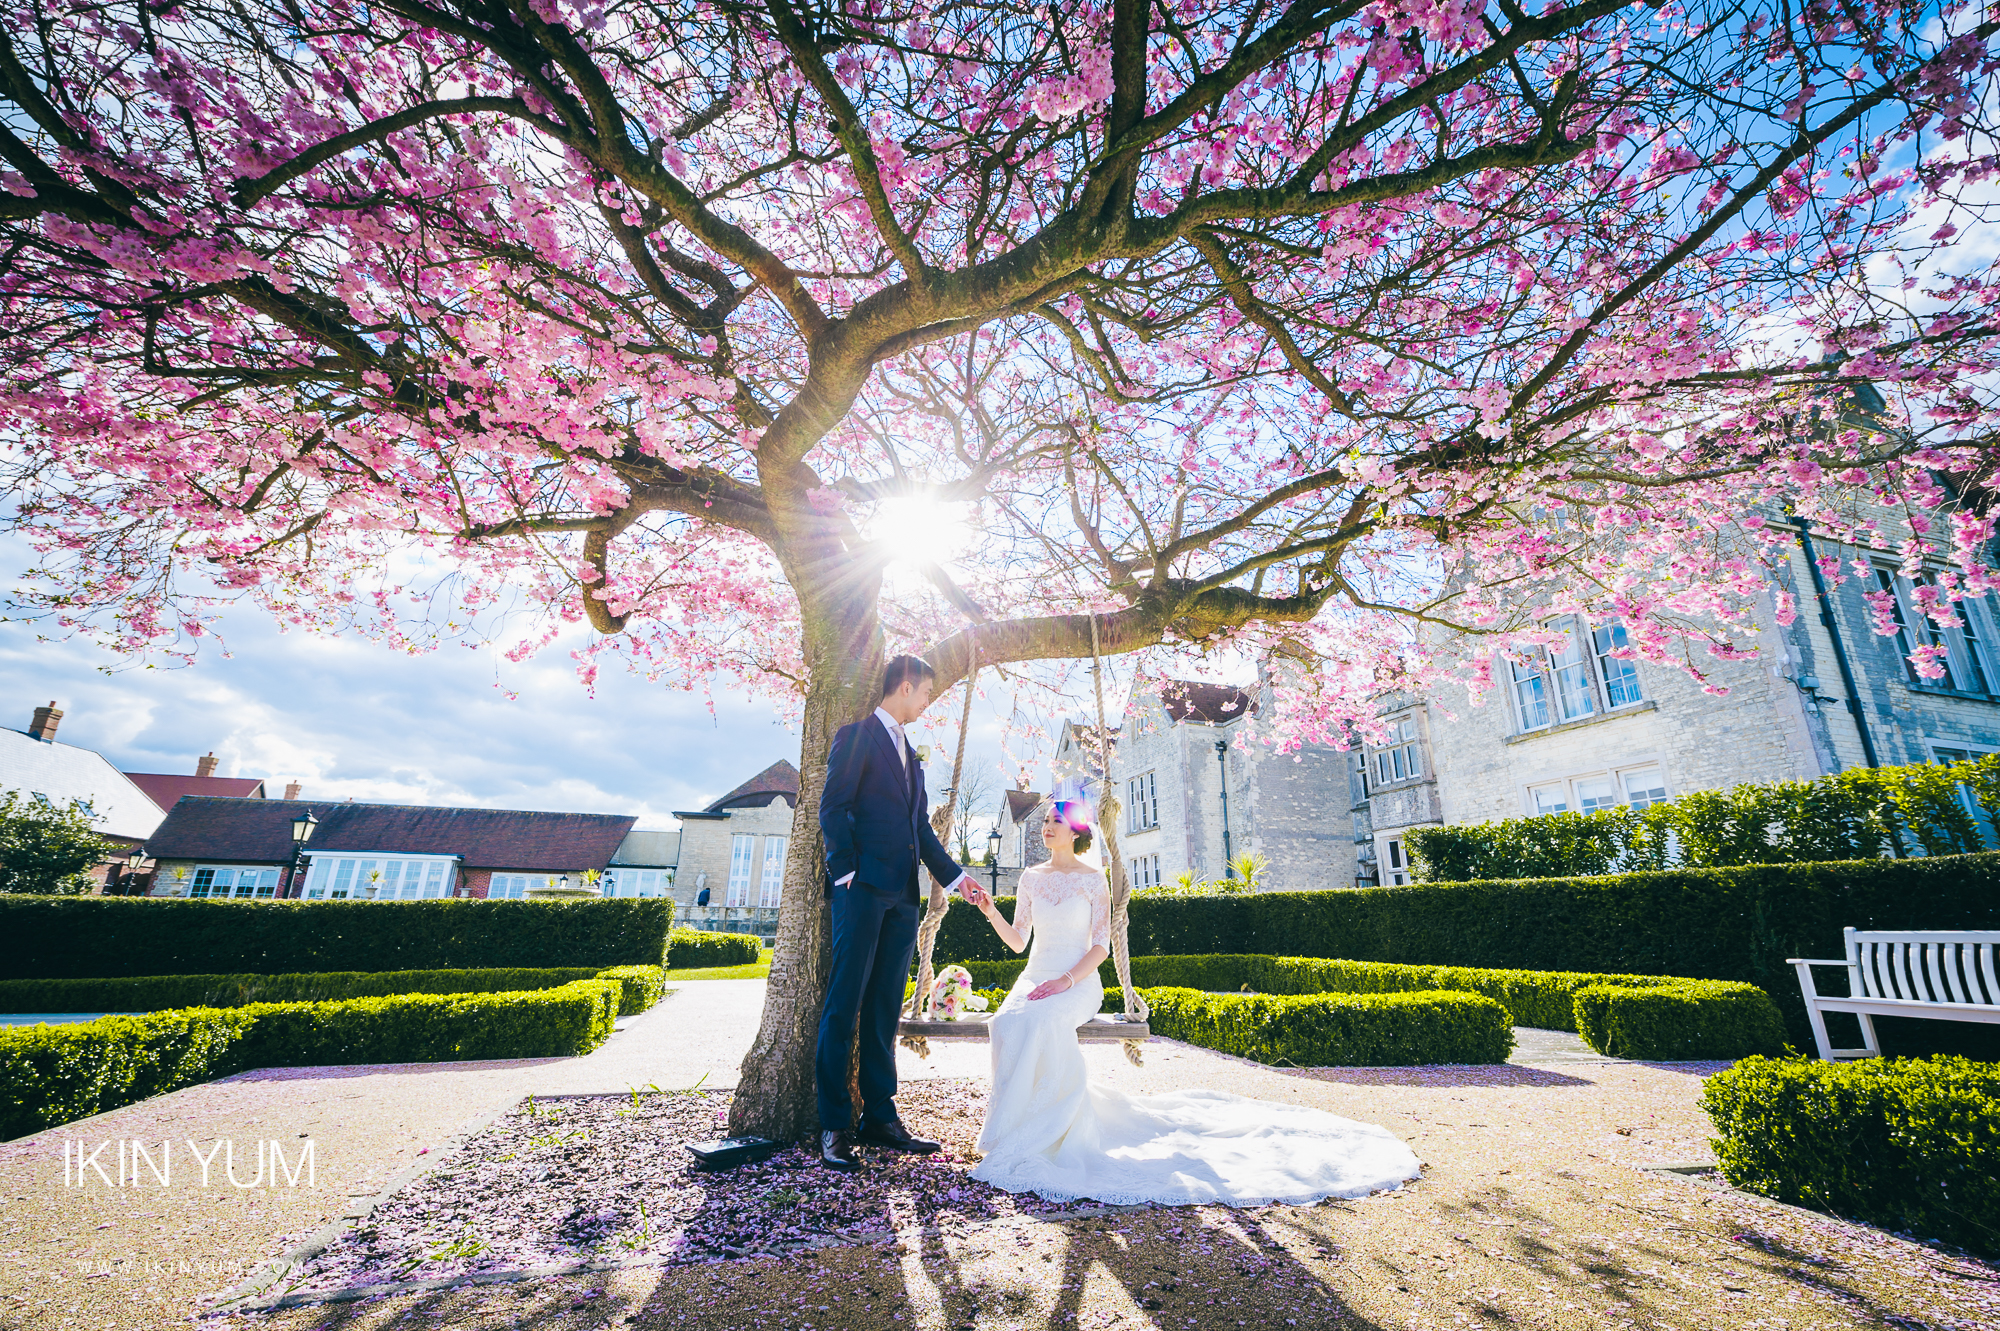 Froyle Park Wedding - London - Chinese Wedding Photographer -  英国伦敦 婚礼 摄影